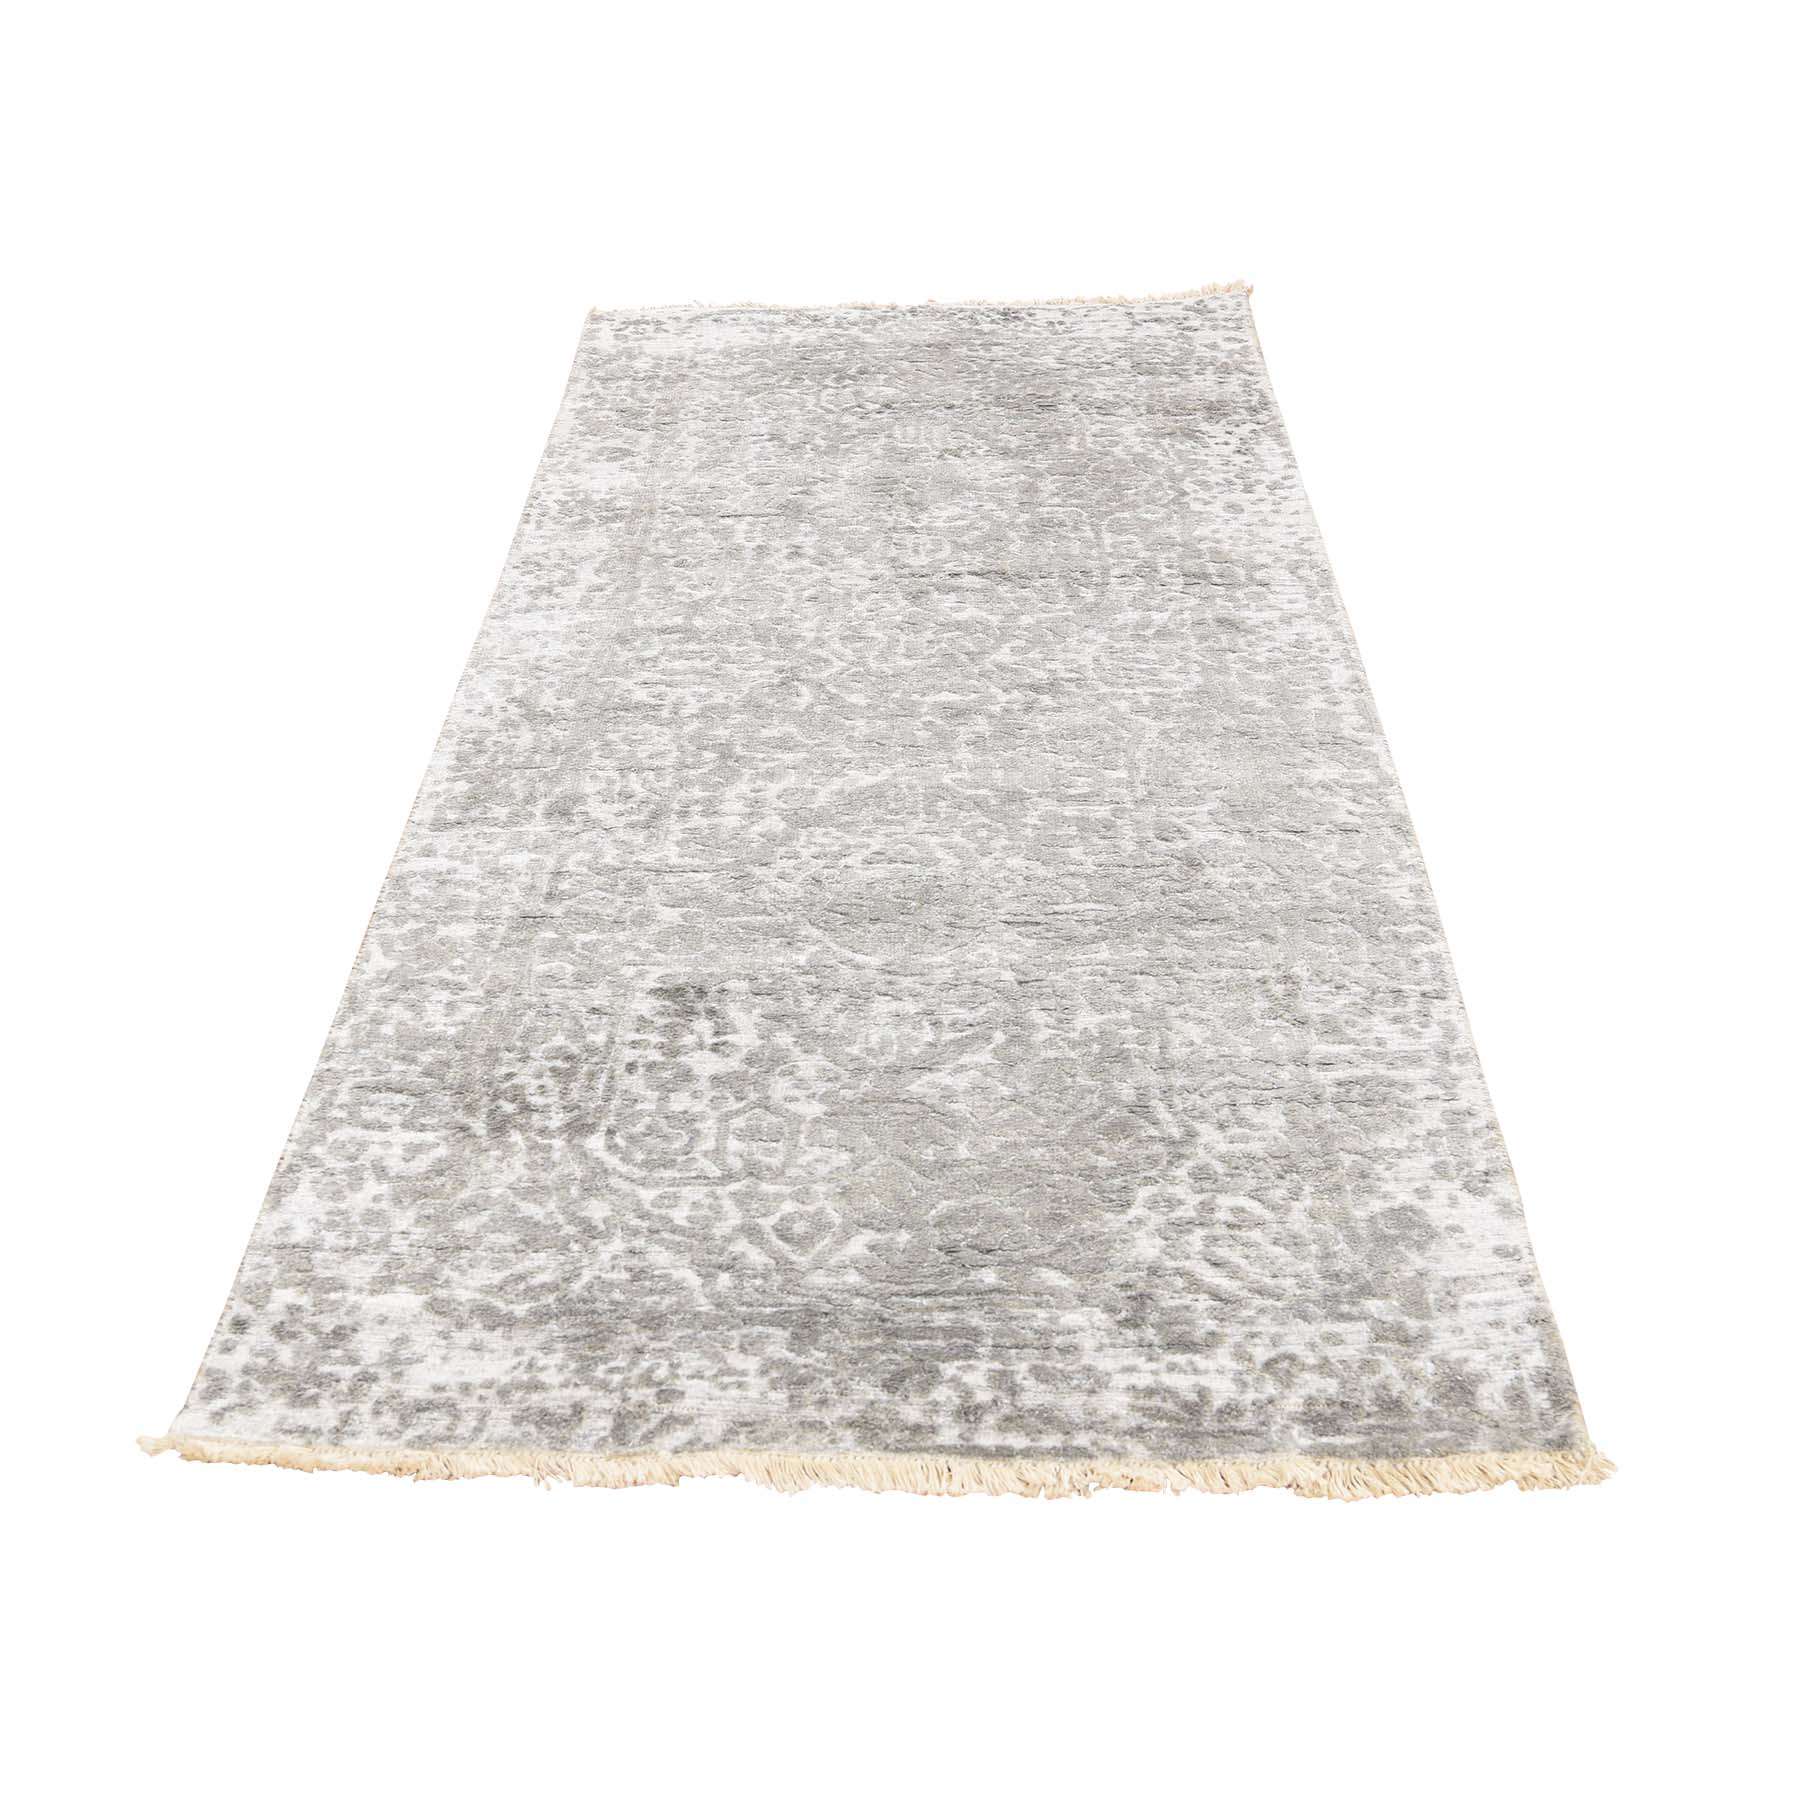 "2'7""X6'1"" Broken Persian Design Wool And Pure Silk Grey Hand-Knotted Runner Rug moac96c9"